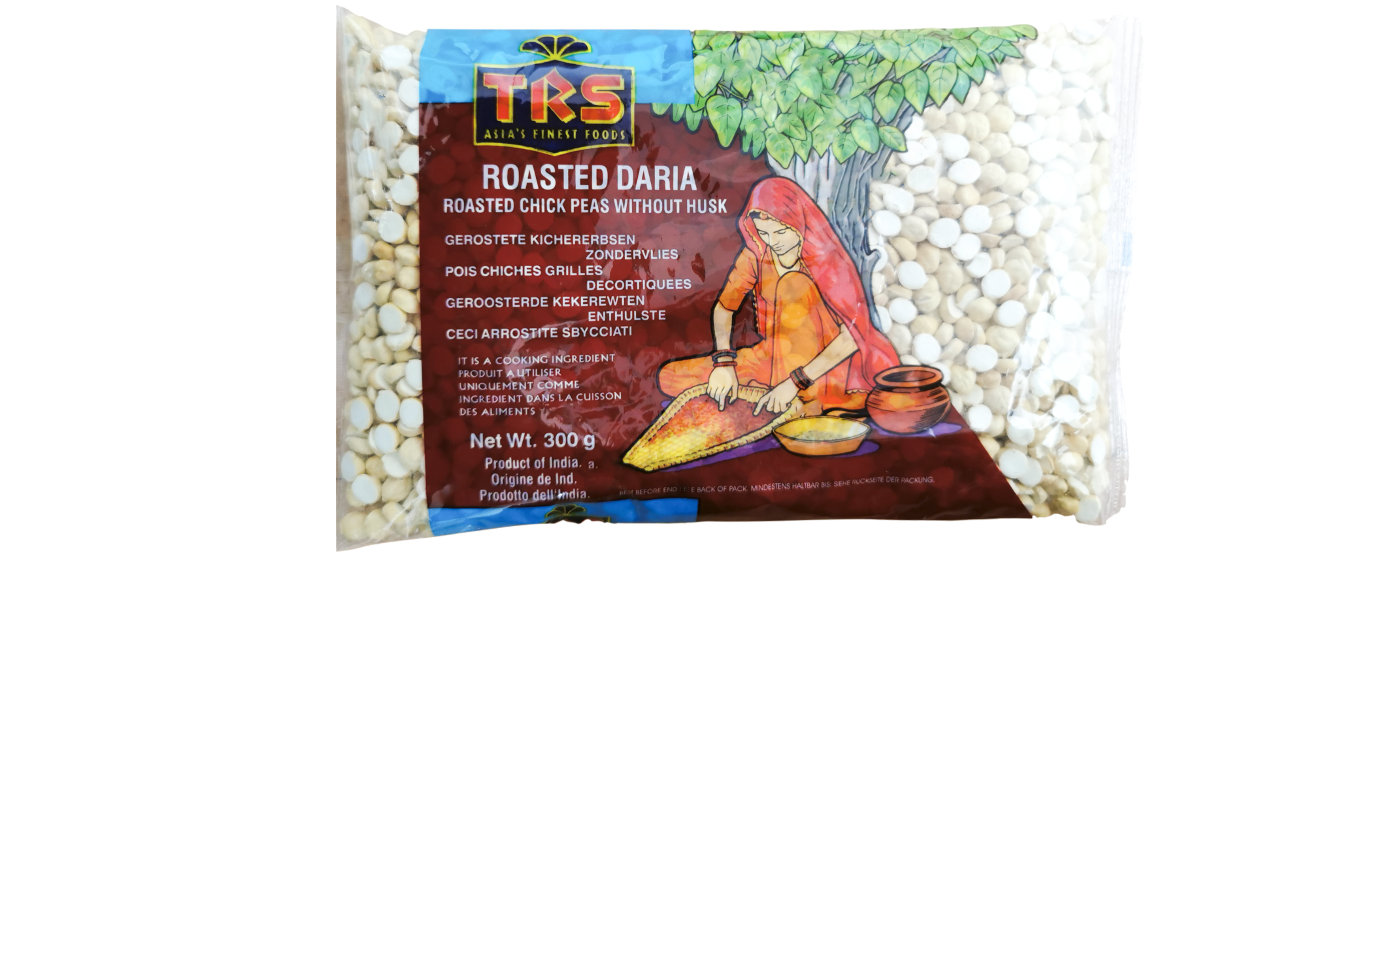 TRS Roasted Daria (Roasted Chick Peas without Husk)